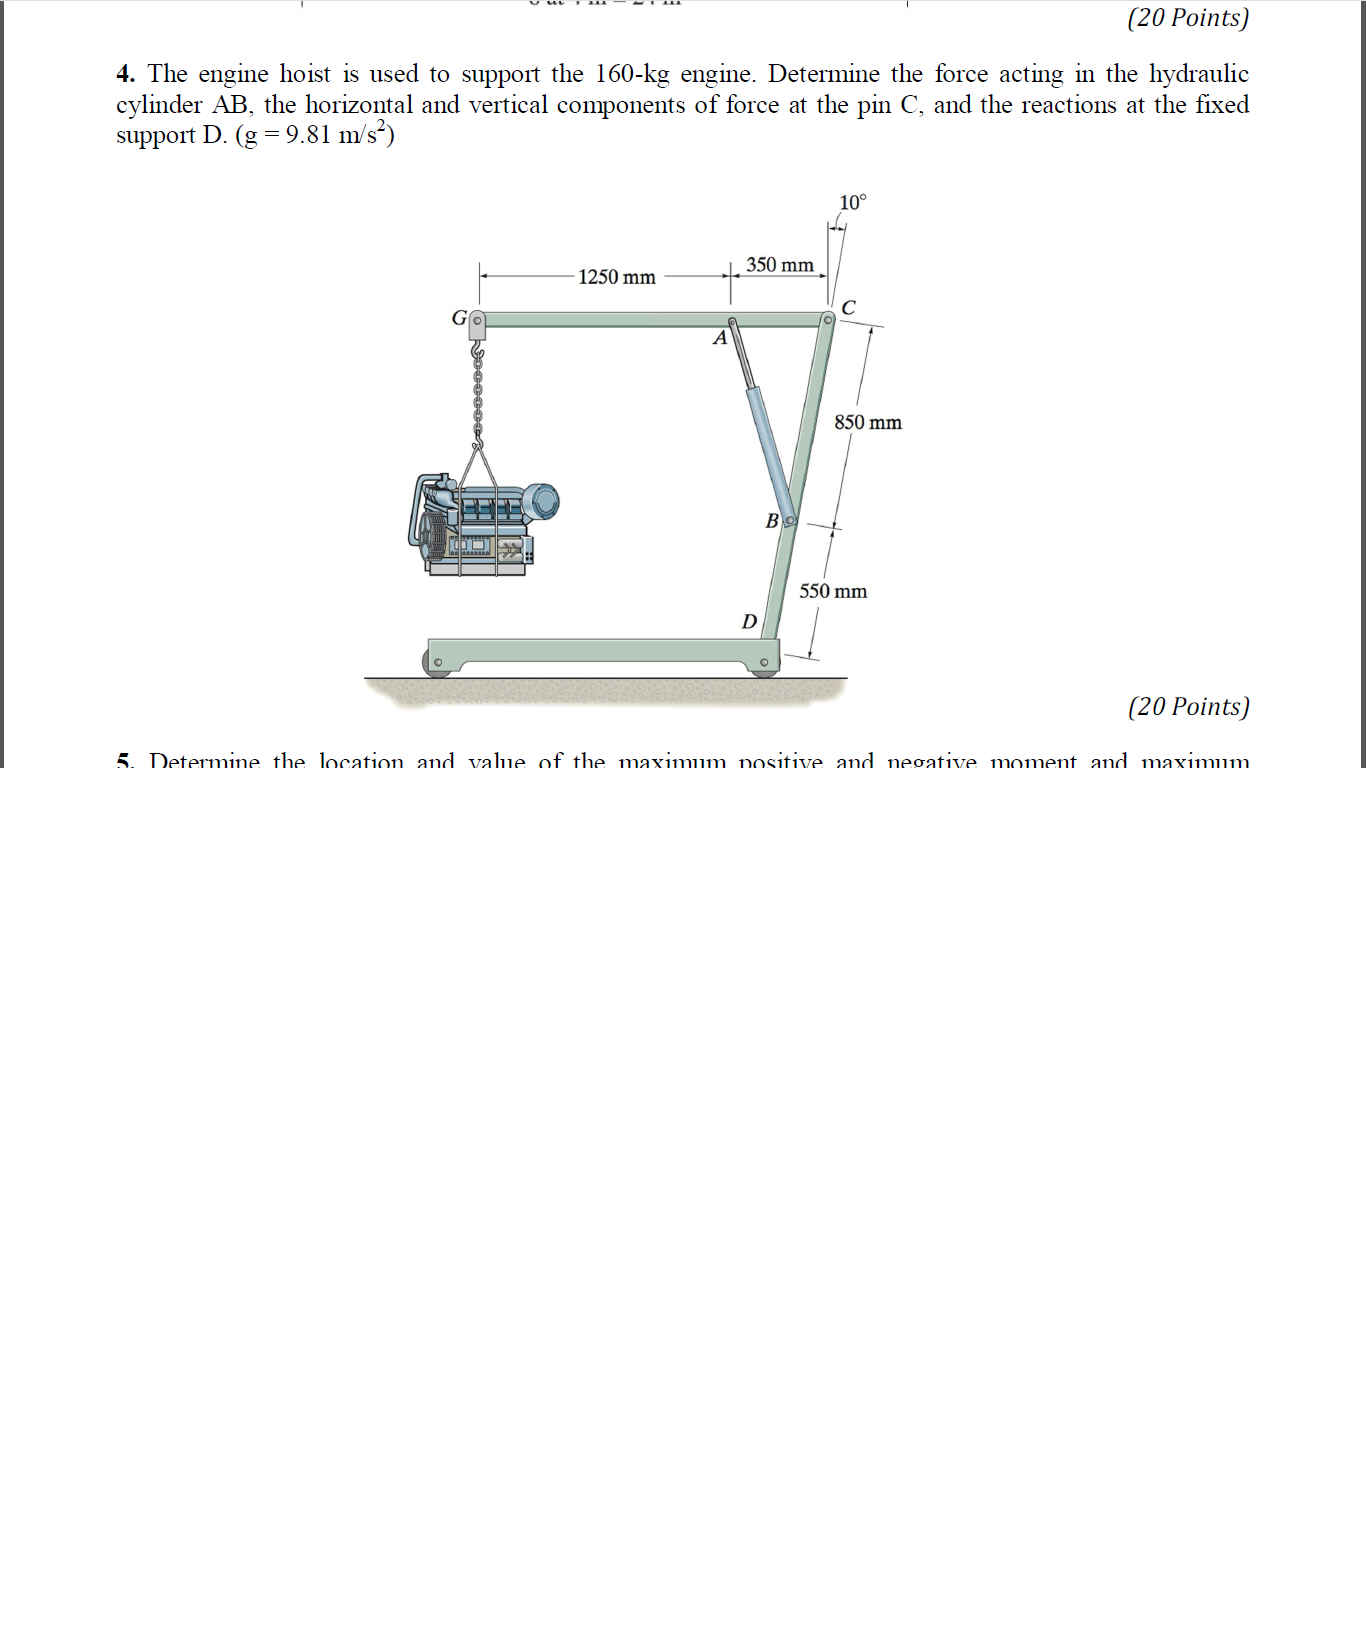 Question: The engine hoist is used to support the 160-kg engine. Determine  the force acting in the hydrauli.